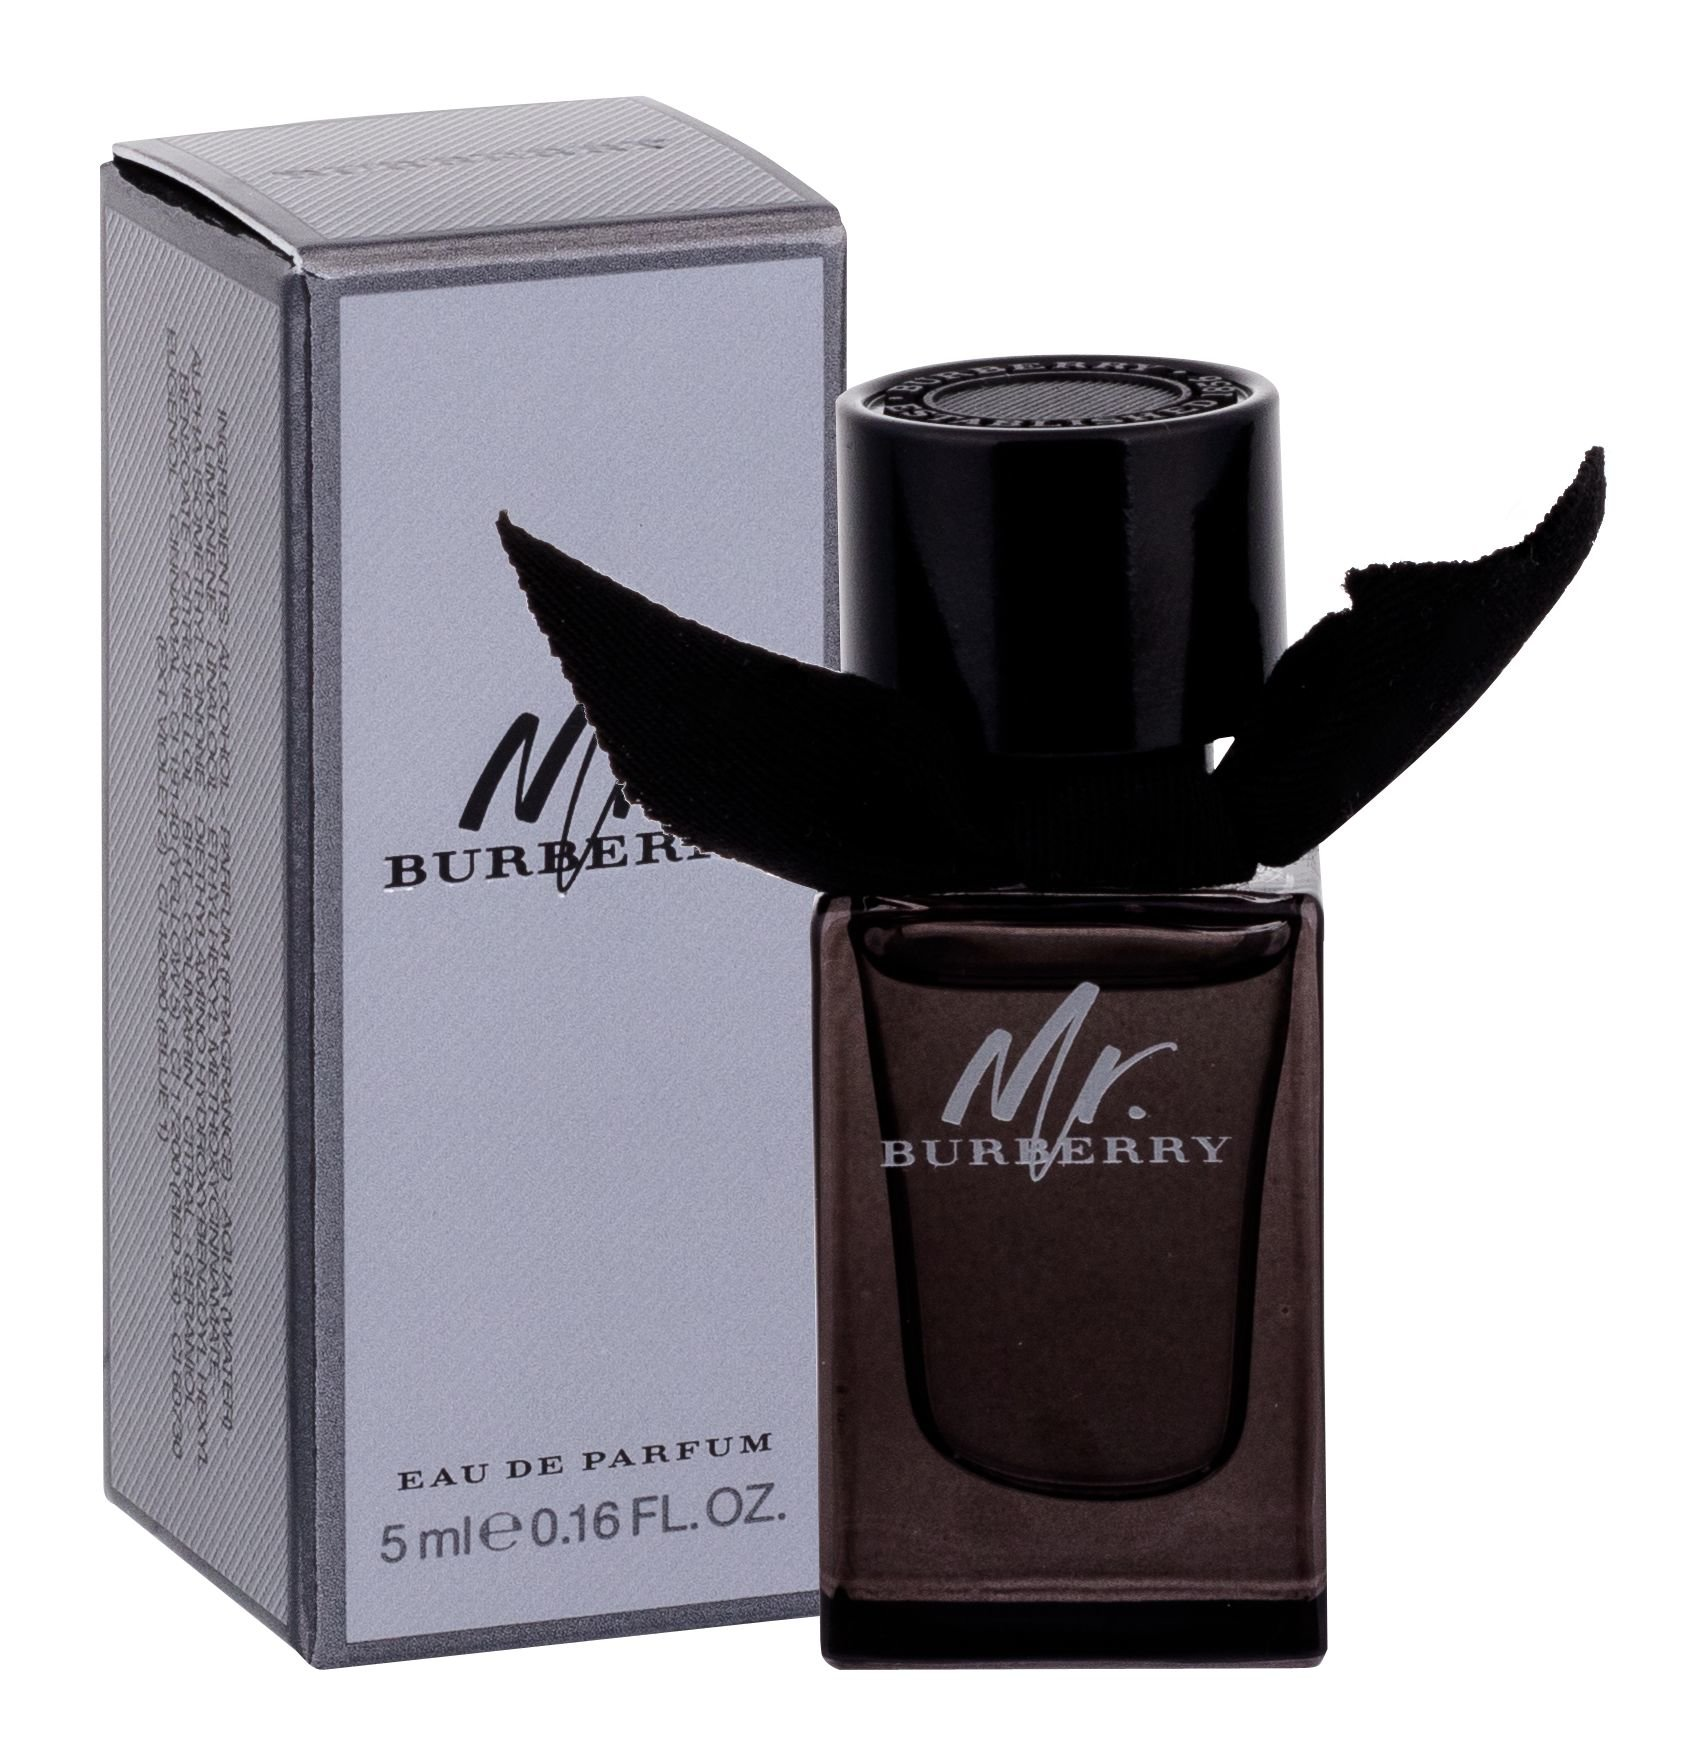 Burberry Mr. Burberry, Parfumovaná voda 5ml